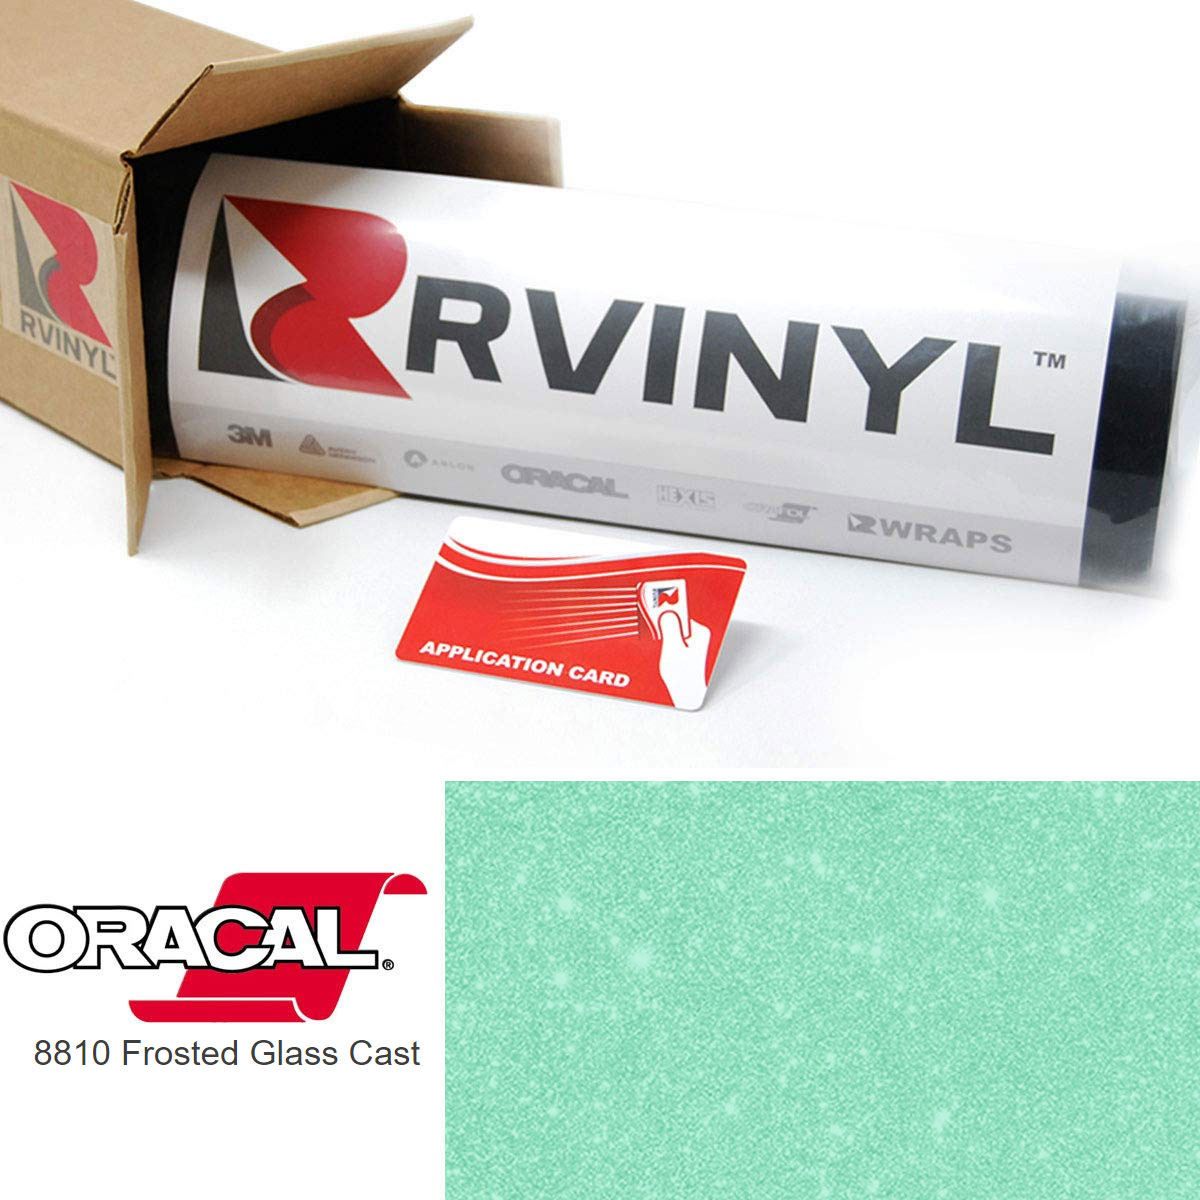 ORACAL 8810 Mint Frosted Calendered Film